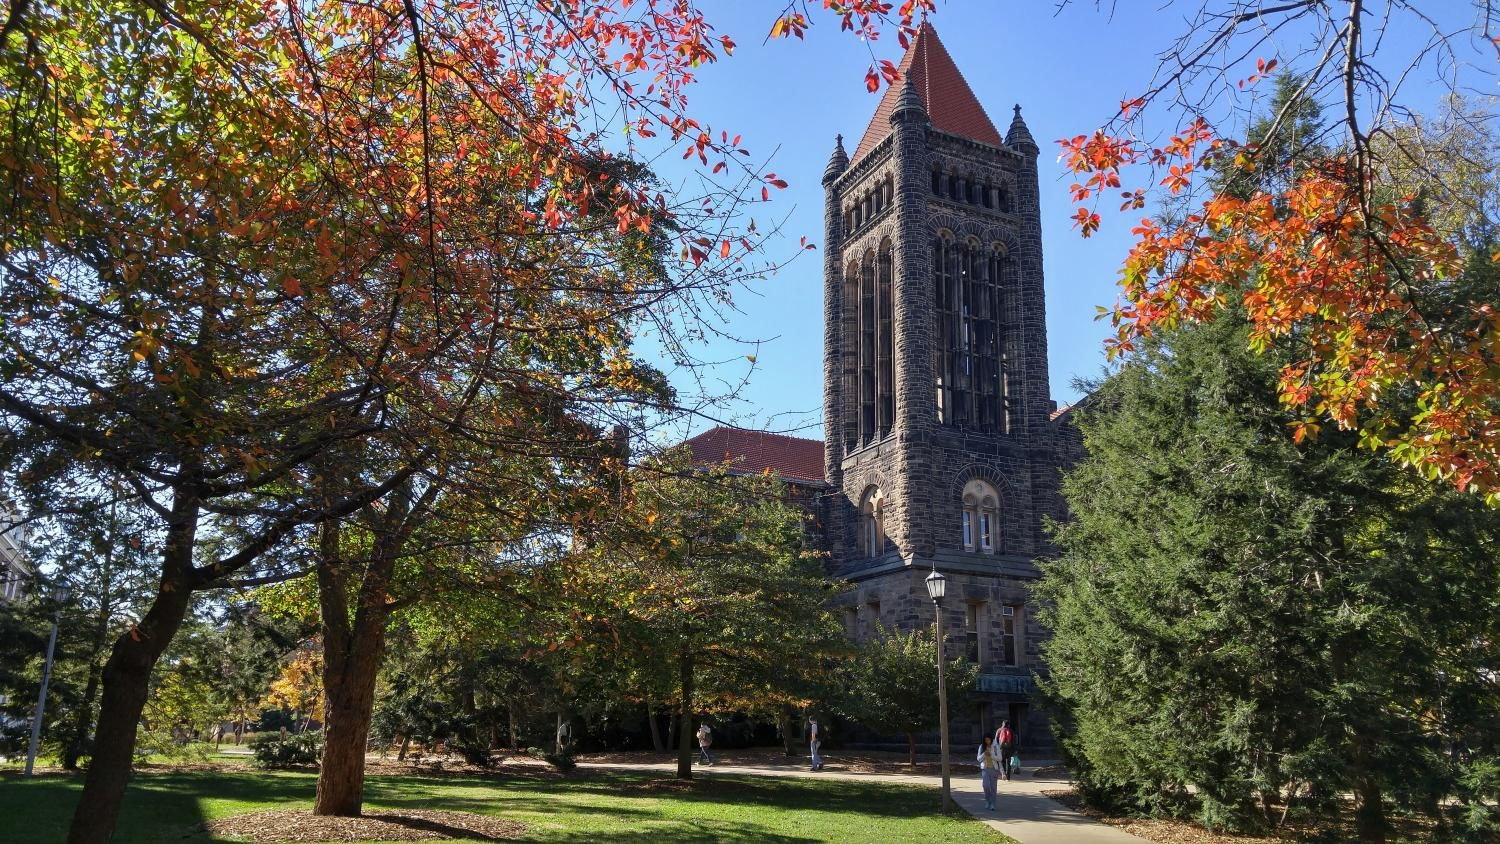 Workers+are+repairing+the+Altgeld+Bell+Tower.+After+being+dismissed%2C+many+chimes+players+are+not+sure+they%E2%80%99ll+come+back.+